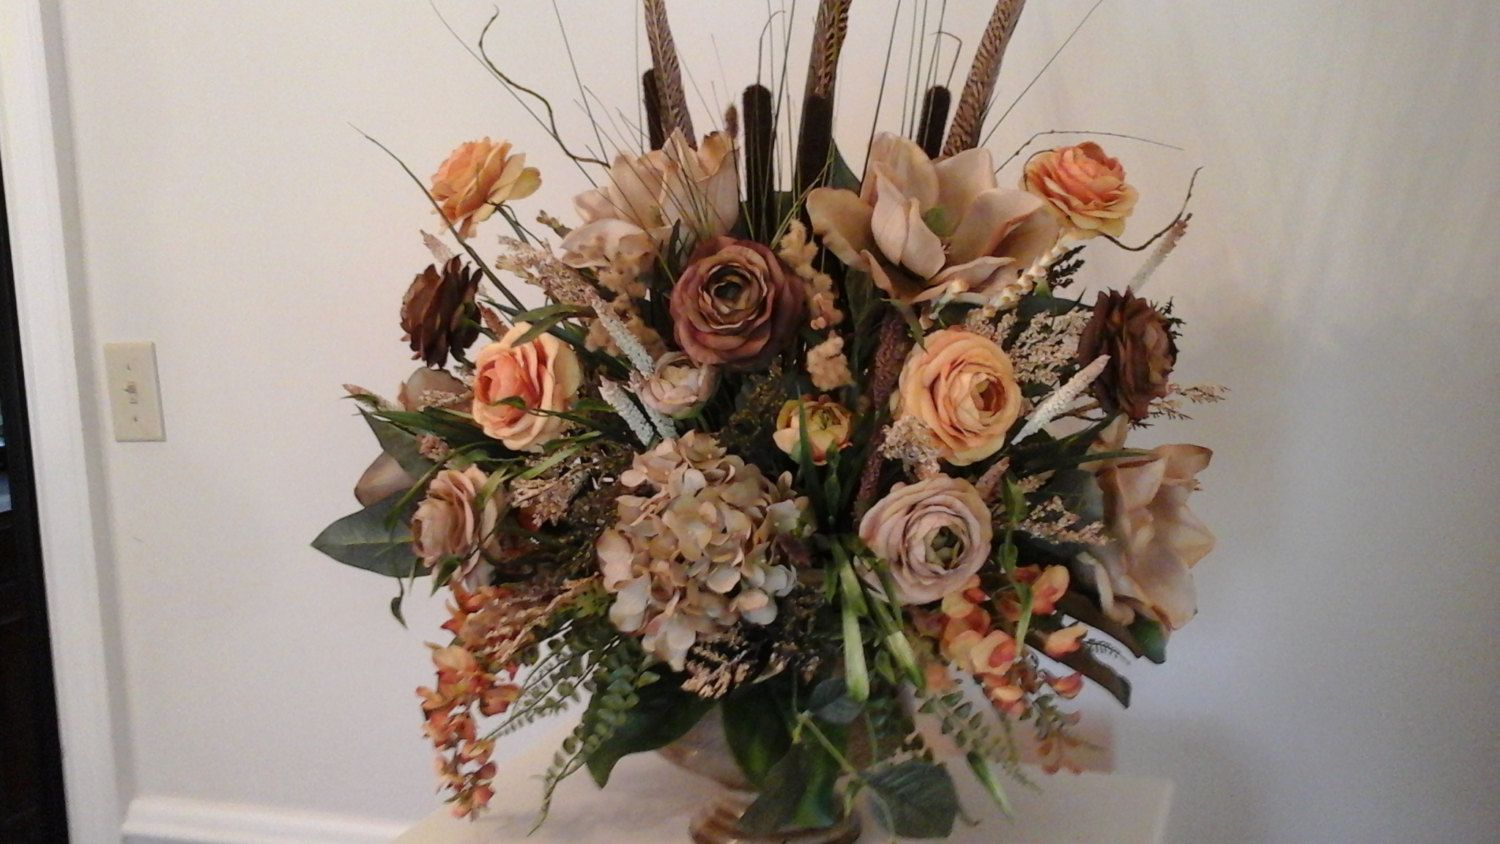 Floral Arrangement Large Magnolia Centerpiece SHIPPING INCLUDED Silk Any Season Table